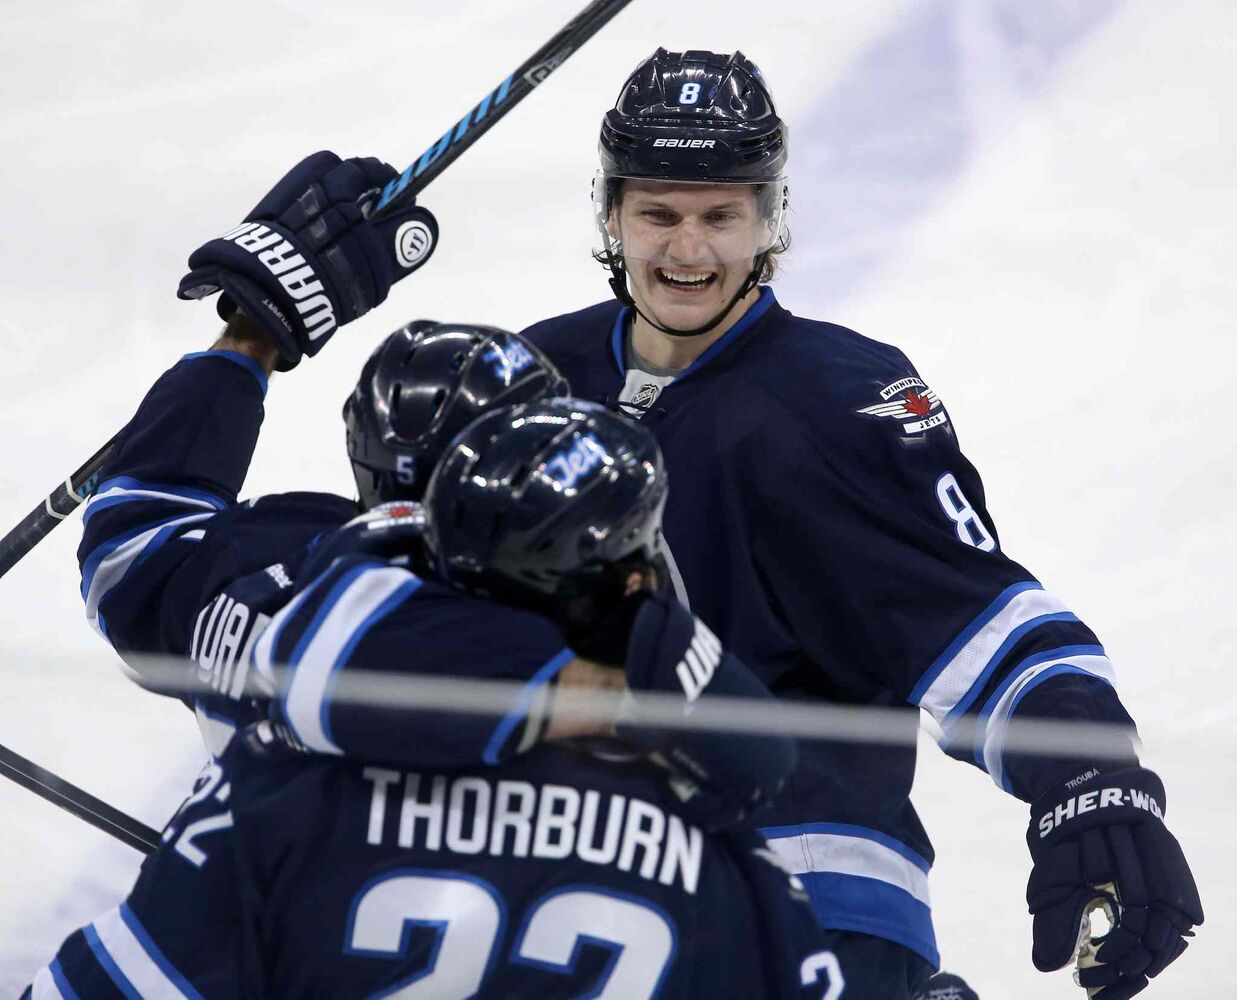 Winnipeg Jets' Jacob Trouba (8), Mark Stuart (5) and Chris Thorburn (22) celebrate Thorburn's first goal of the season during the  first period of Tuesday's game against the Nashville Predators in Winnipeg. (Trevor Hagan / The Canadian Press)